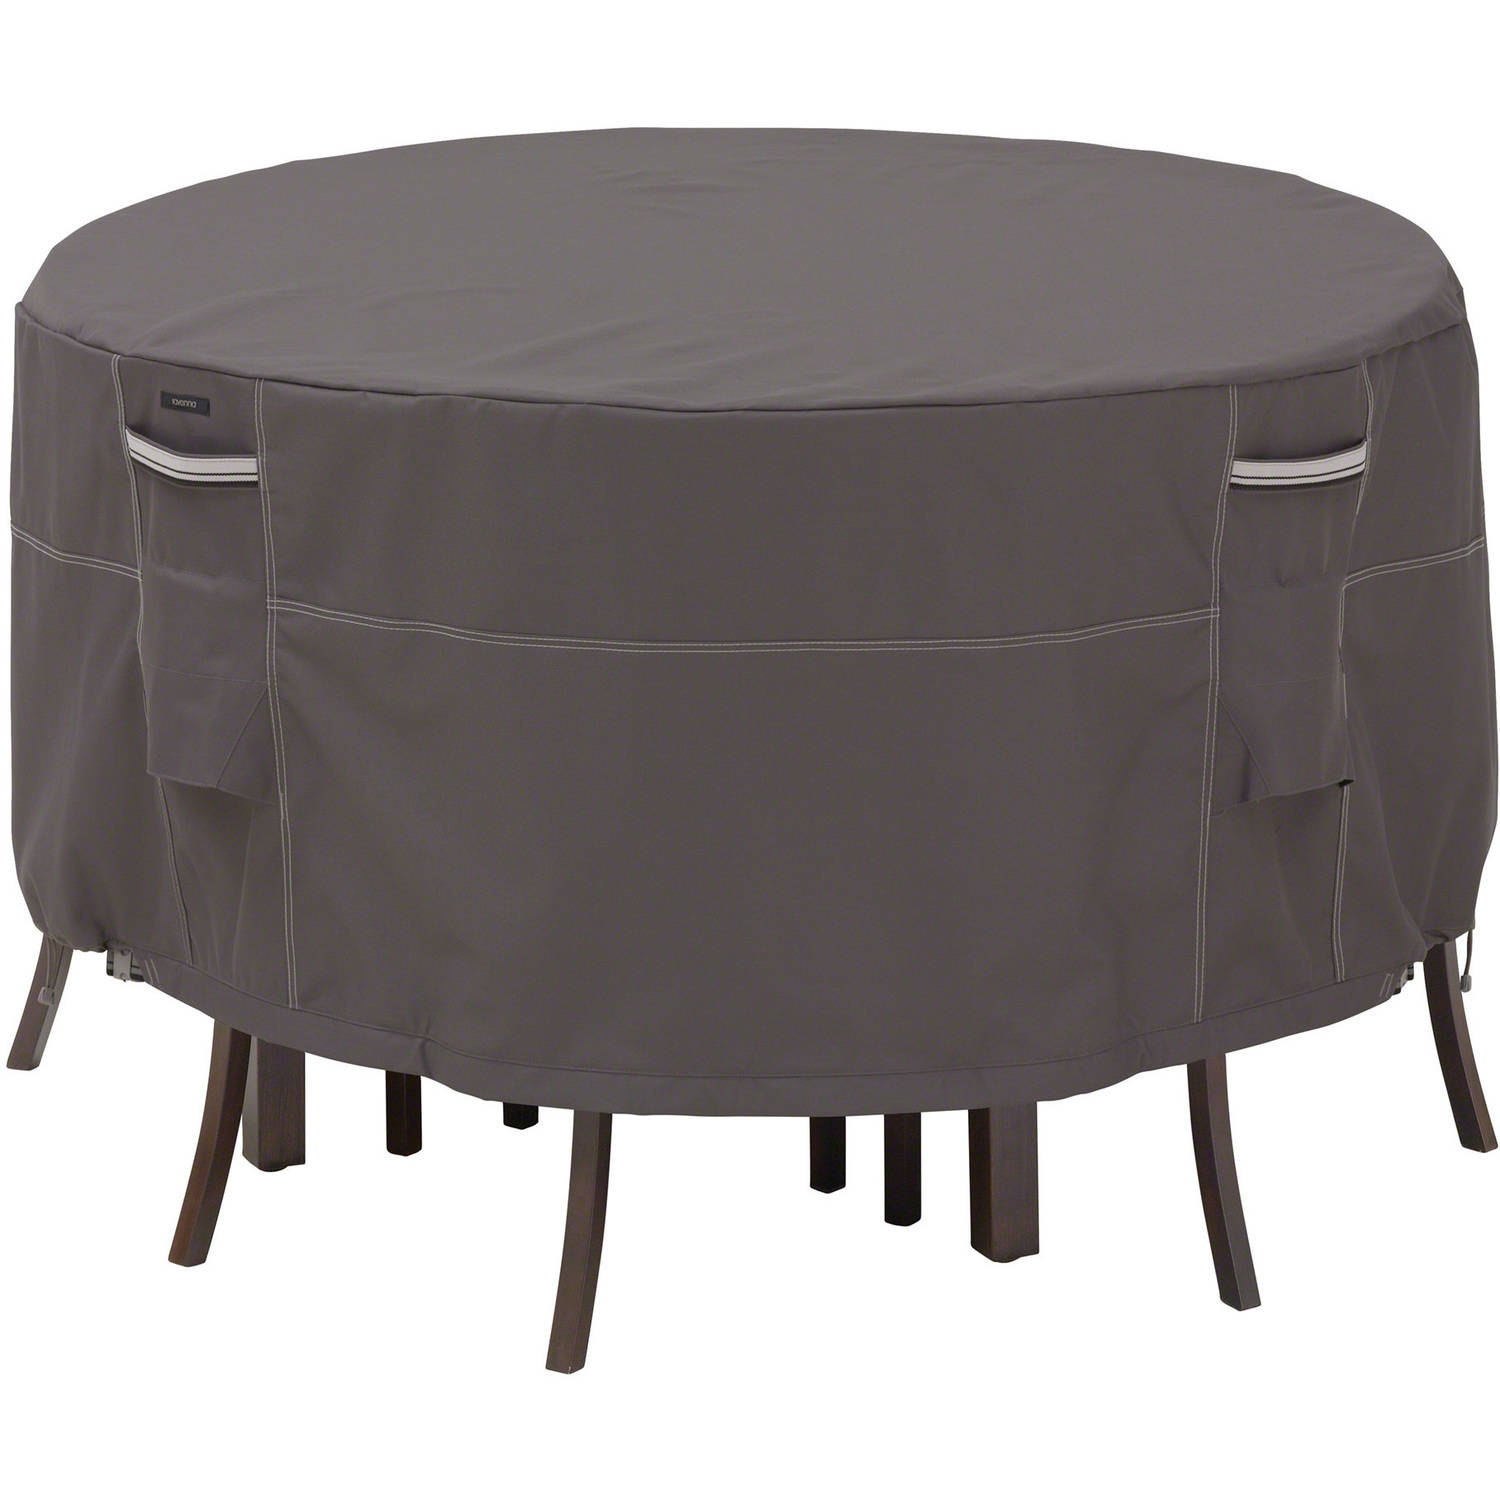 Classic Accessories Ravenna Round Small Patio Table and Chair Furniture Storage Cover,... by Classic Accessories